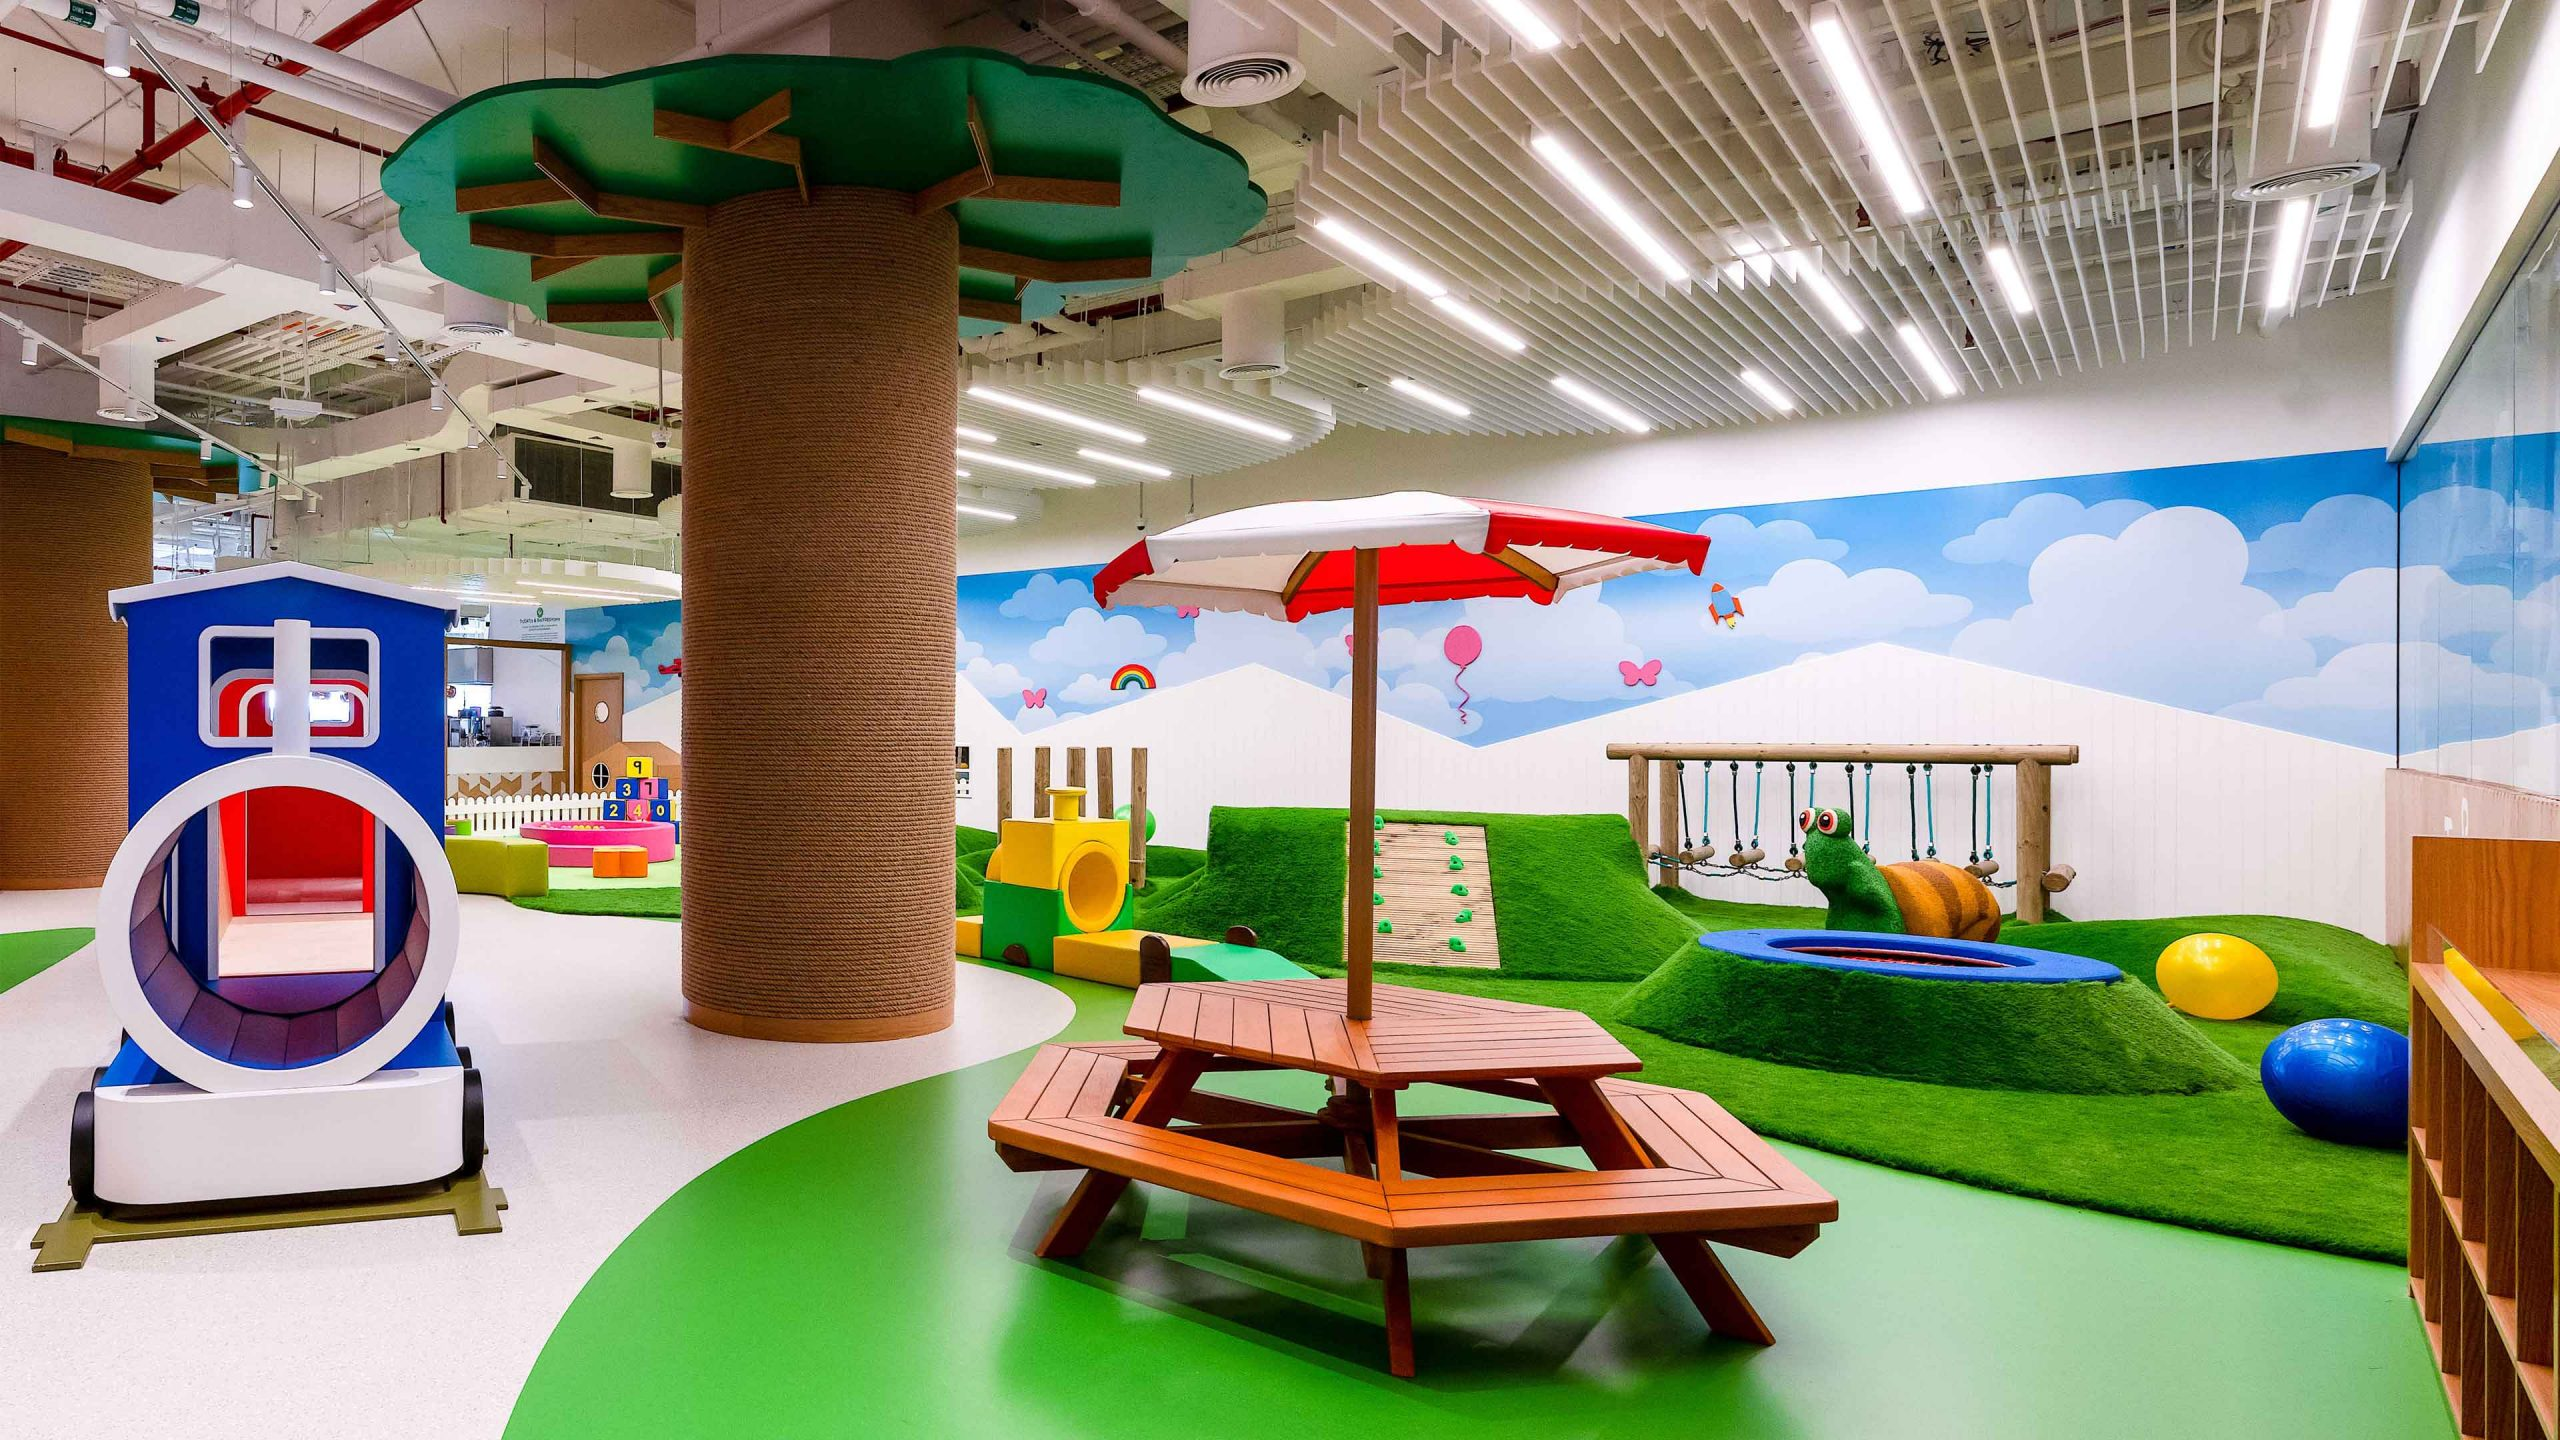 Lighting Design Children's Indoor Play Park Vibrant Fun Interior Feature Linear Ceiling Lights Designers Studio N